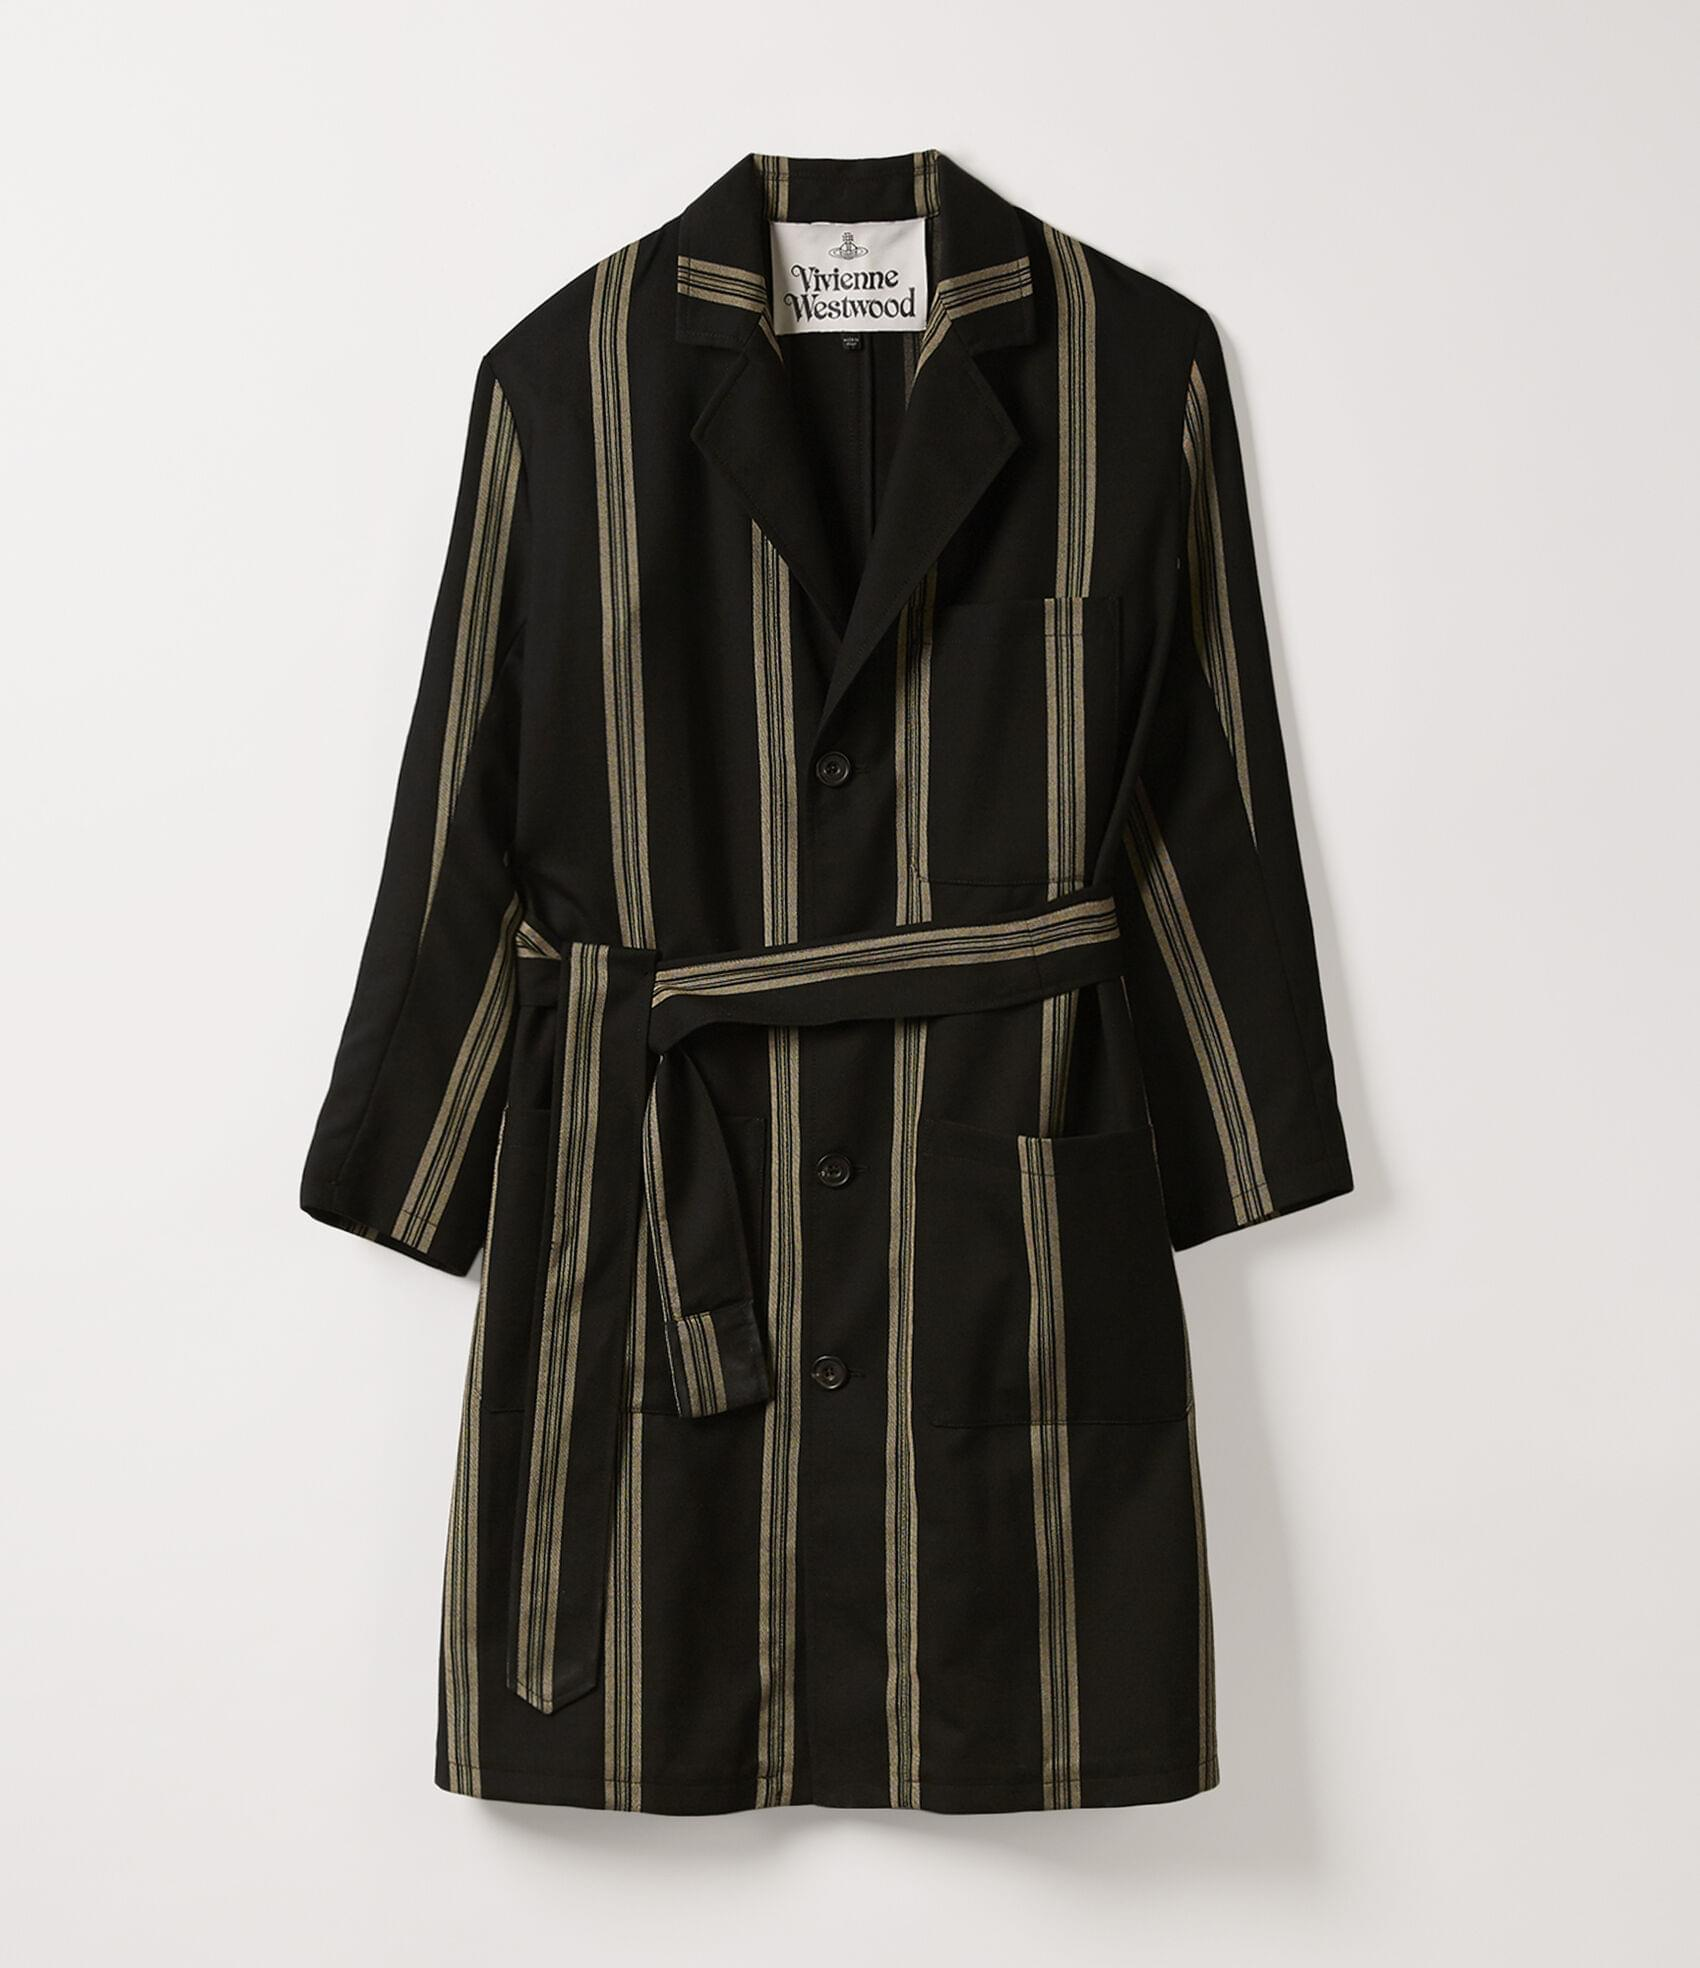 Vivienne Westwood WORKER COAT BLACK NATURAL STRIPES